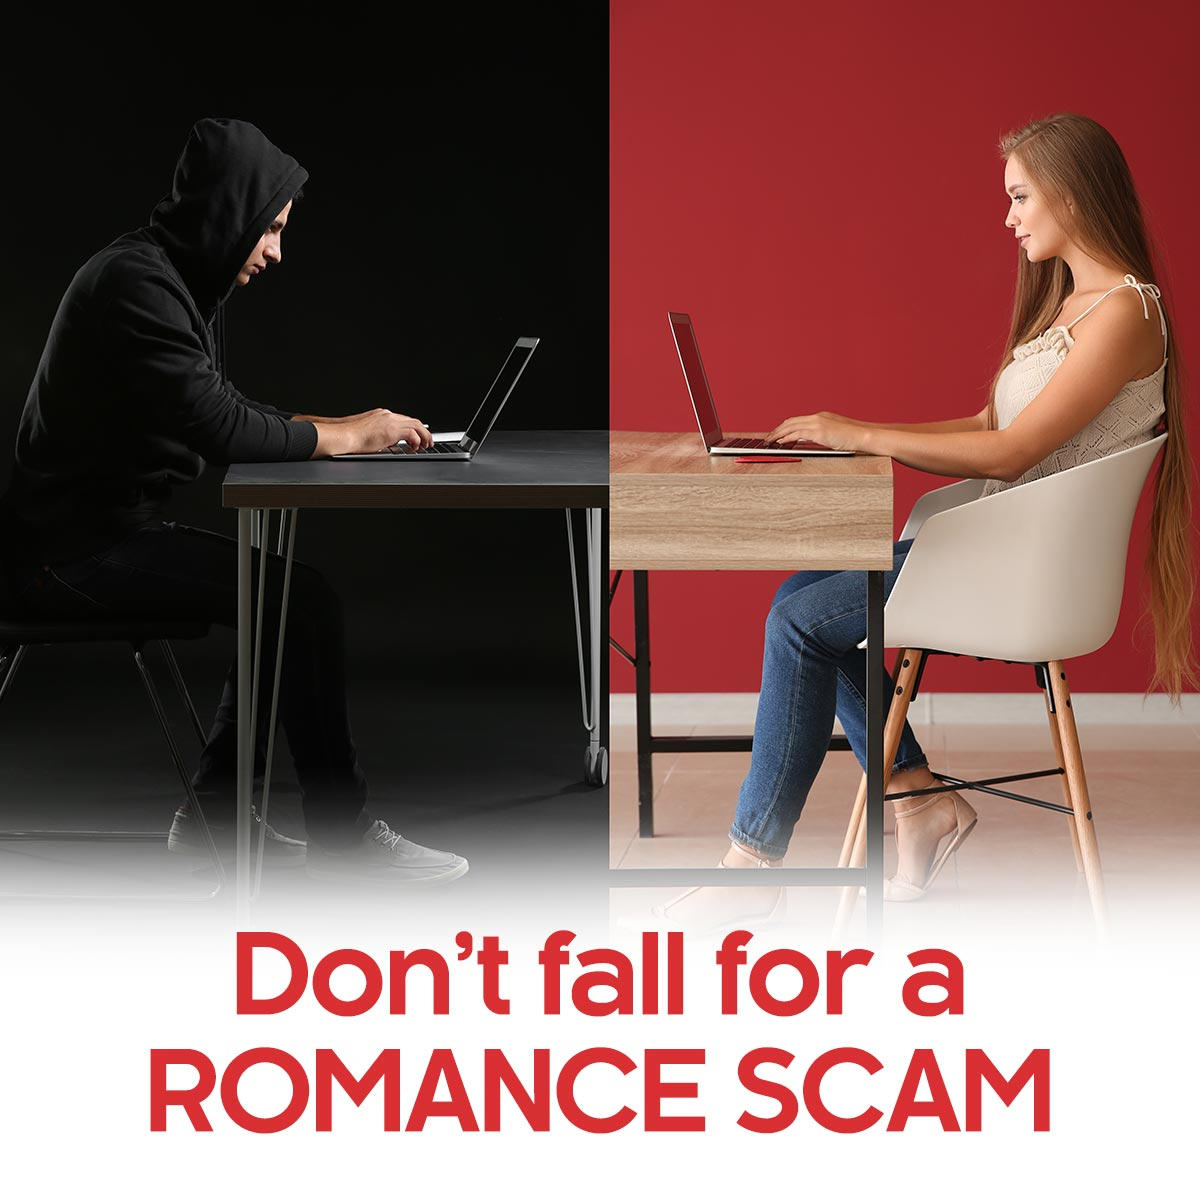 Beware of Romance Scams